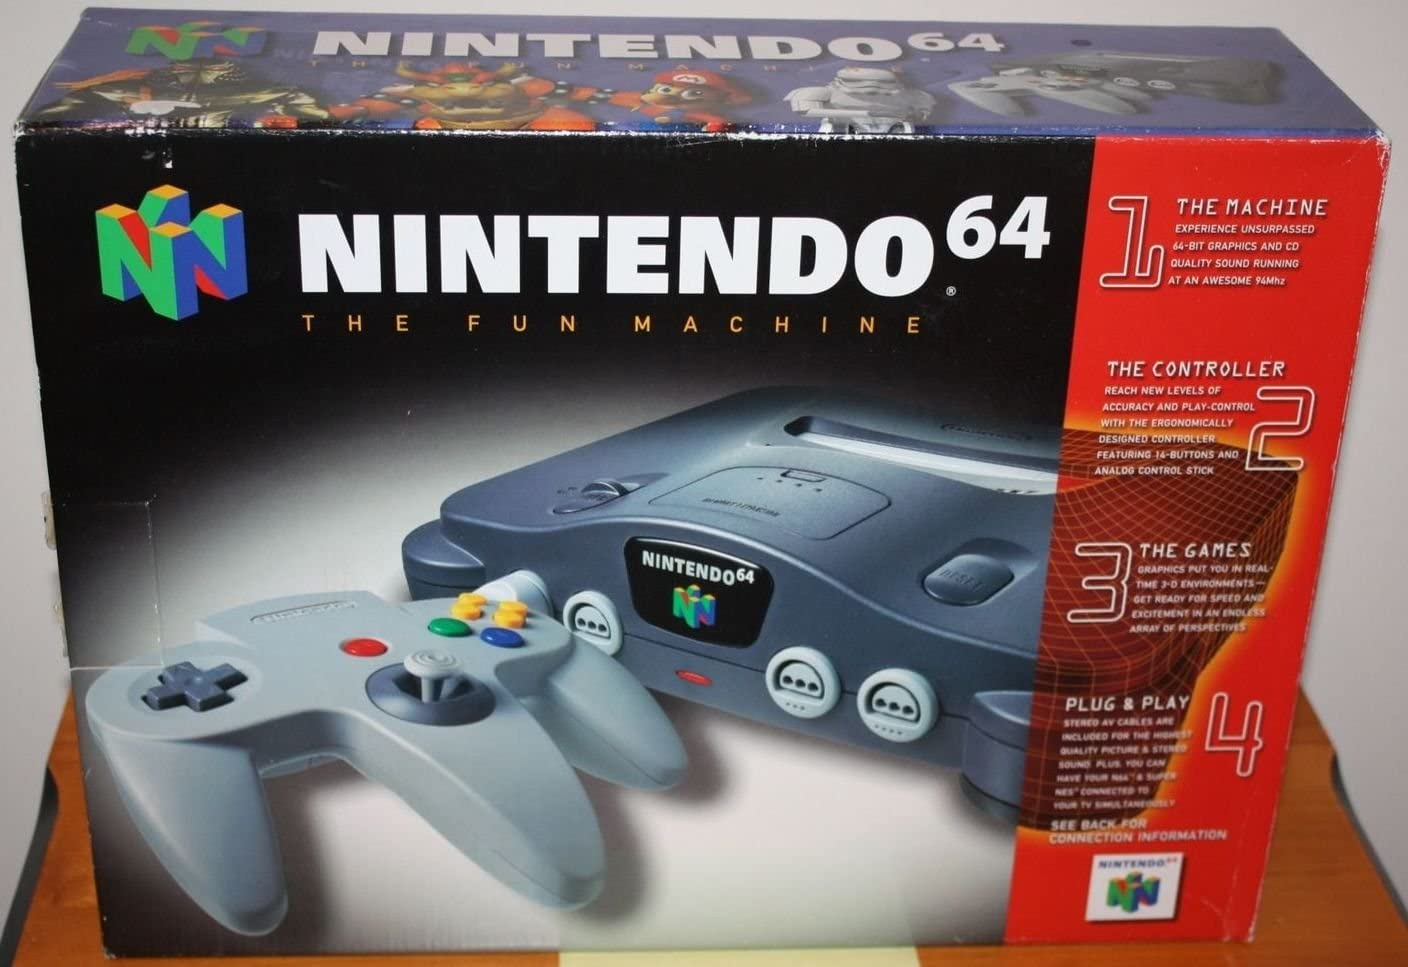 Amazon.com: Nintendo 64 System - Video Game Console: Unknown: Video ...